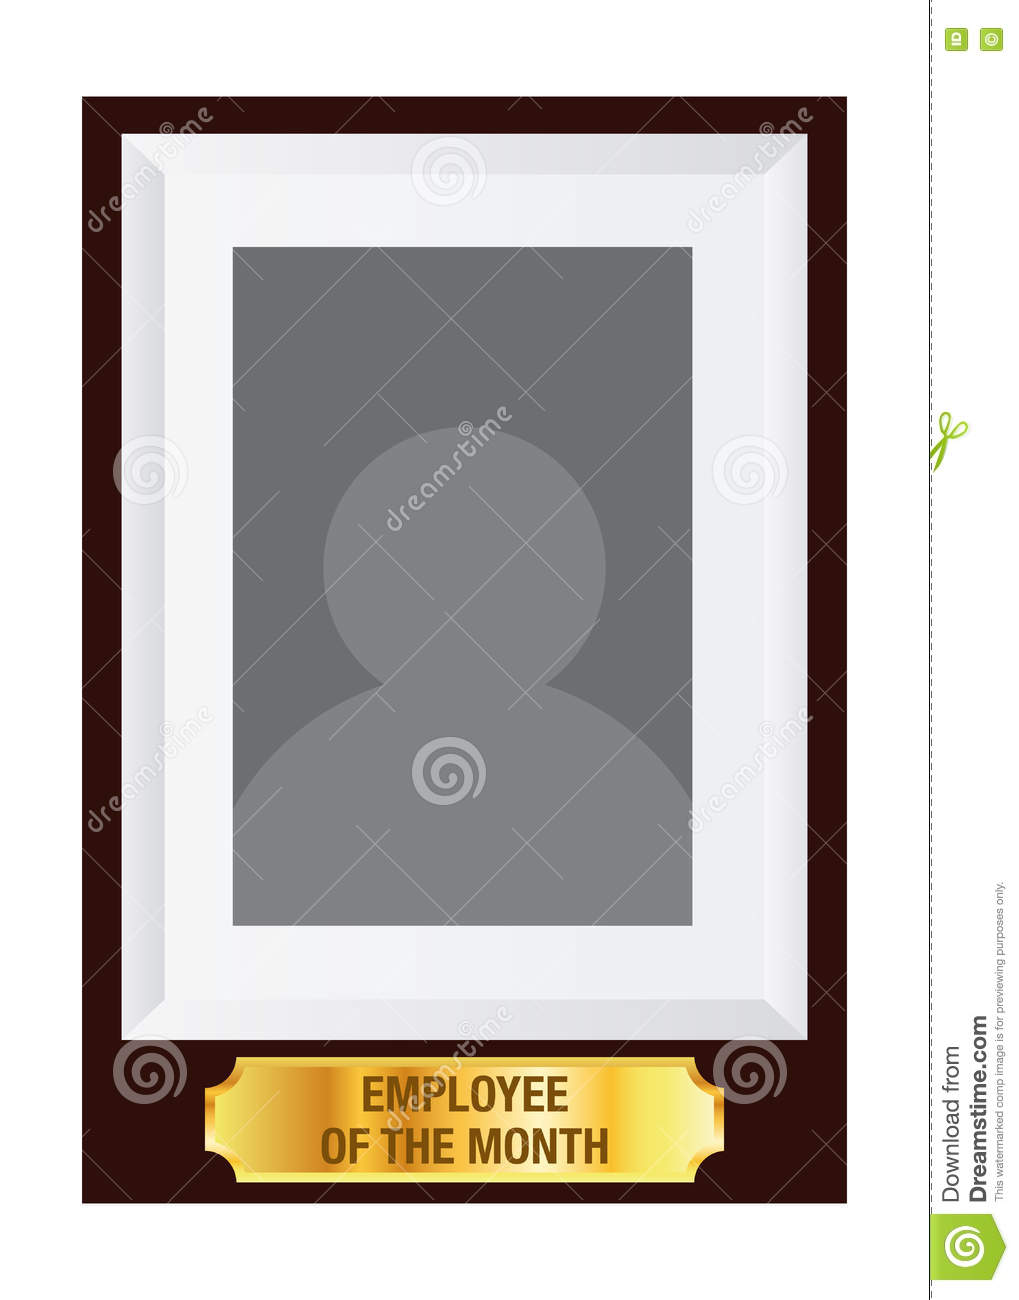 employee of the month photo frame template stock vector